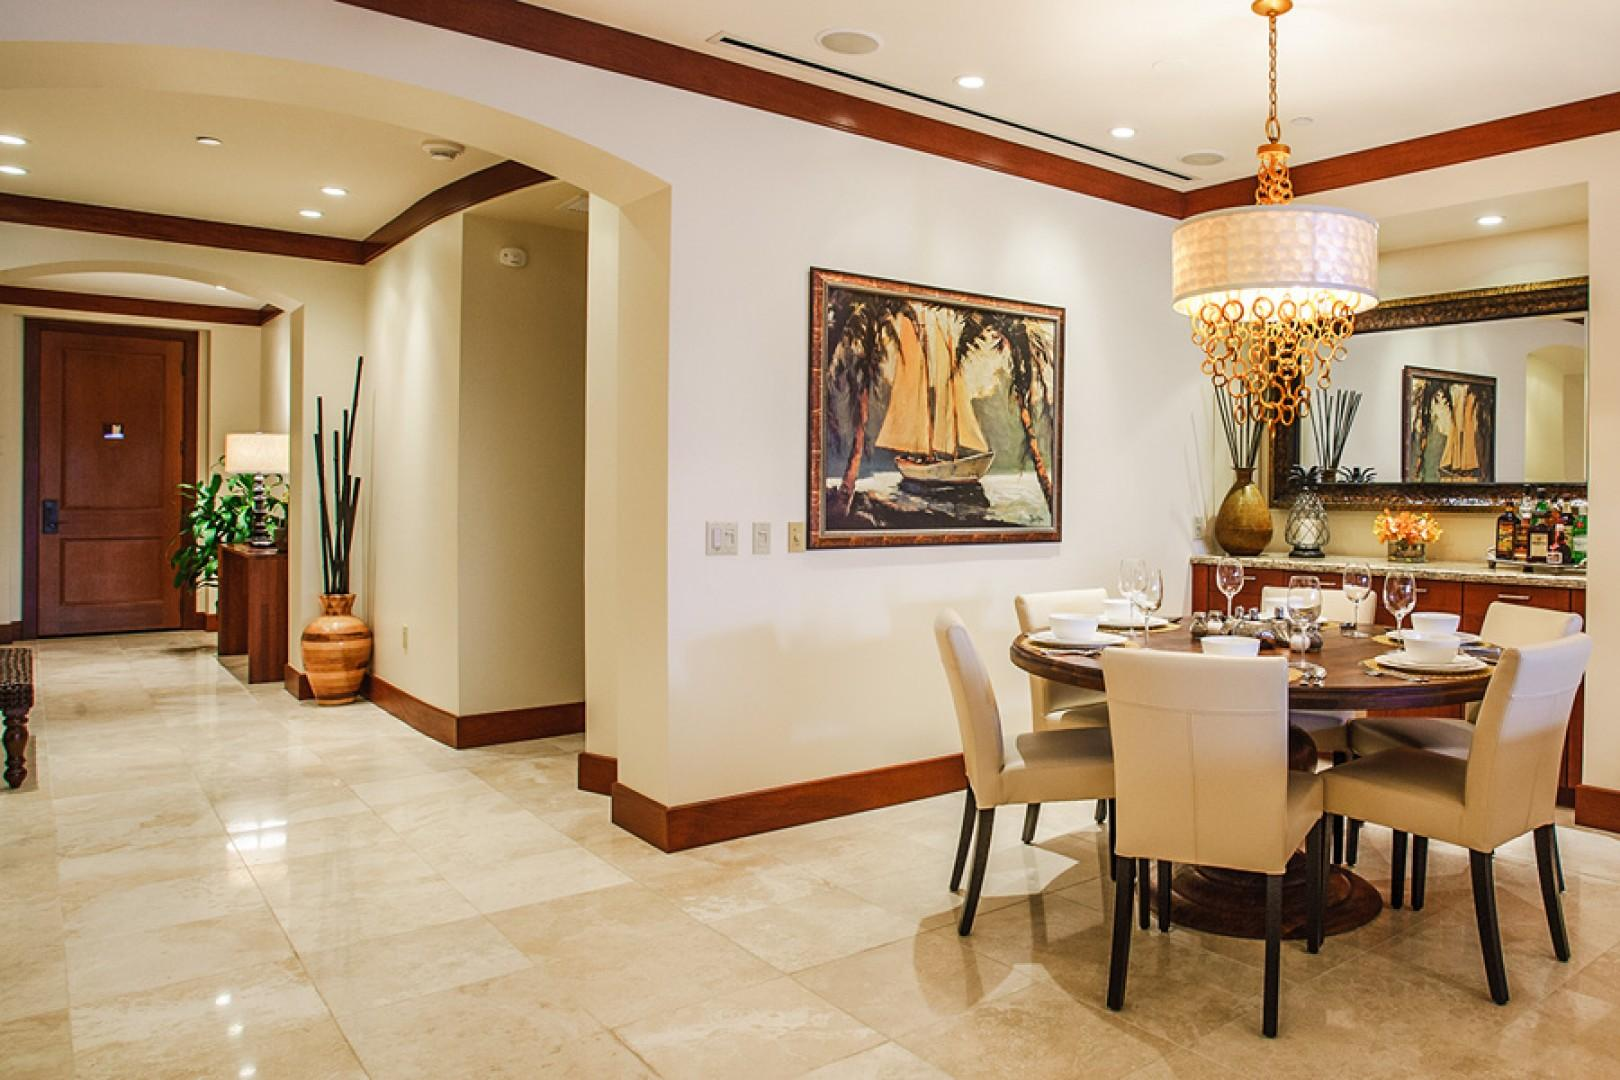 Indoor dining space with 60-inch mango wood table.